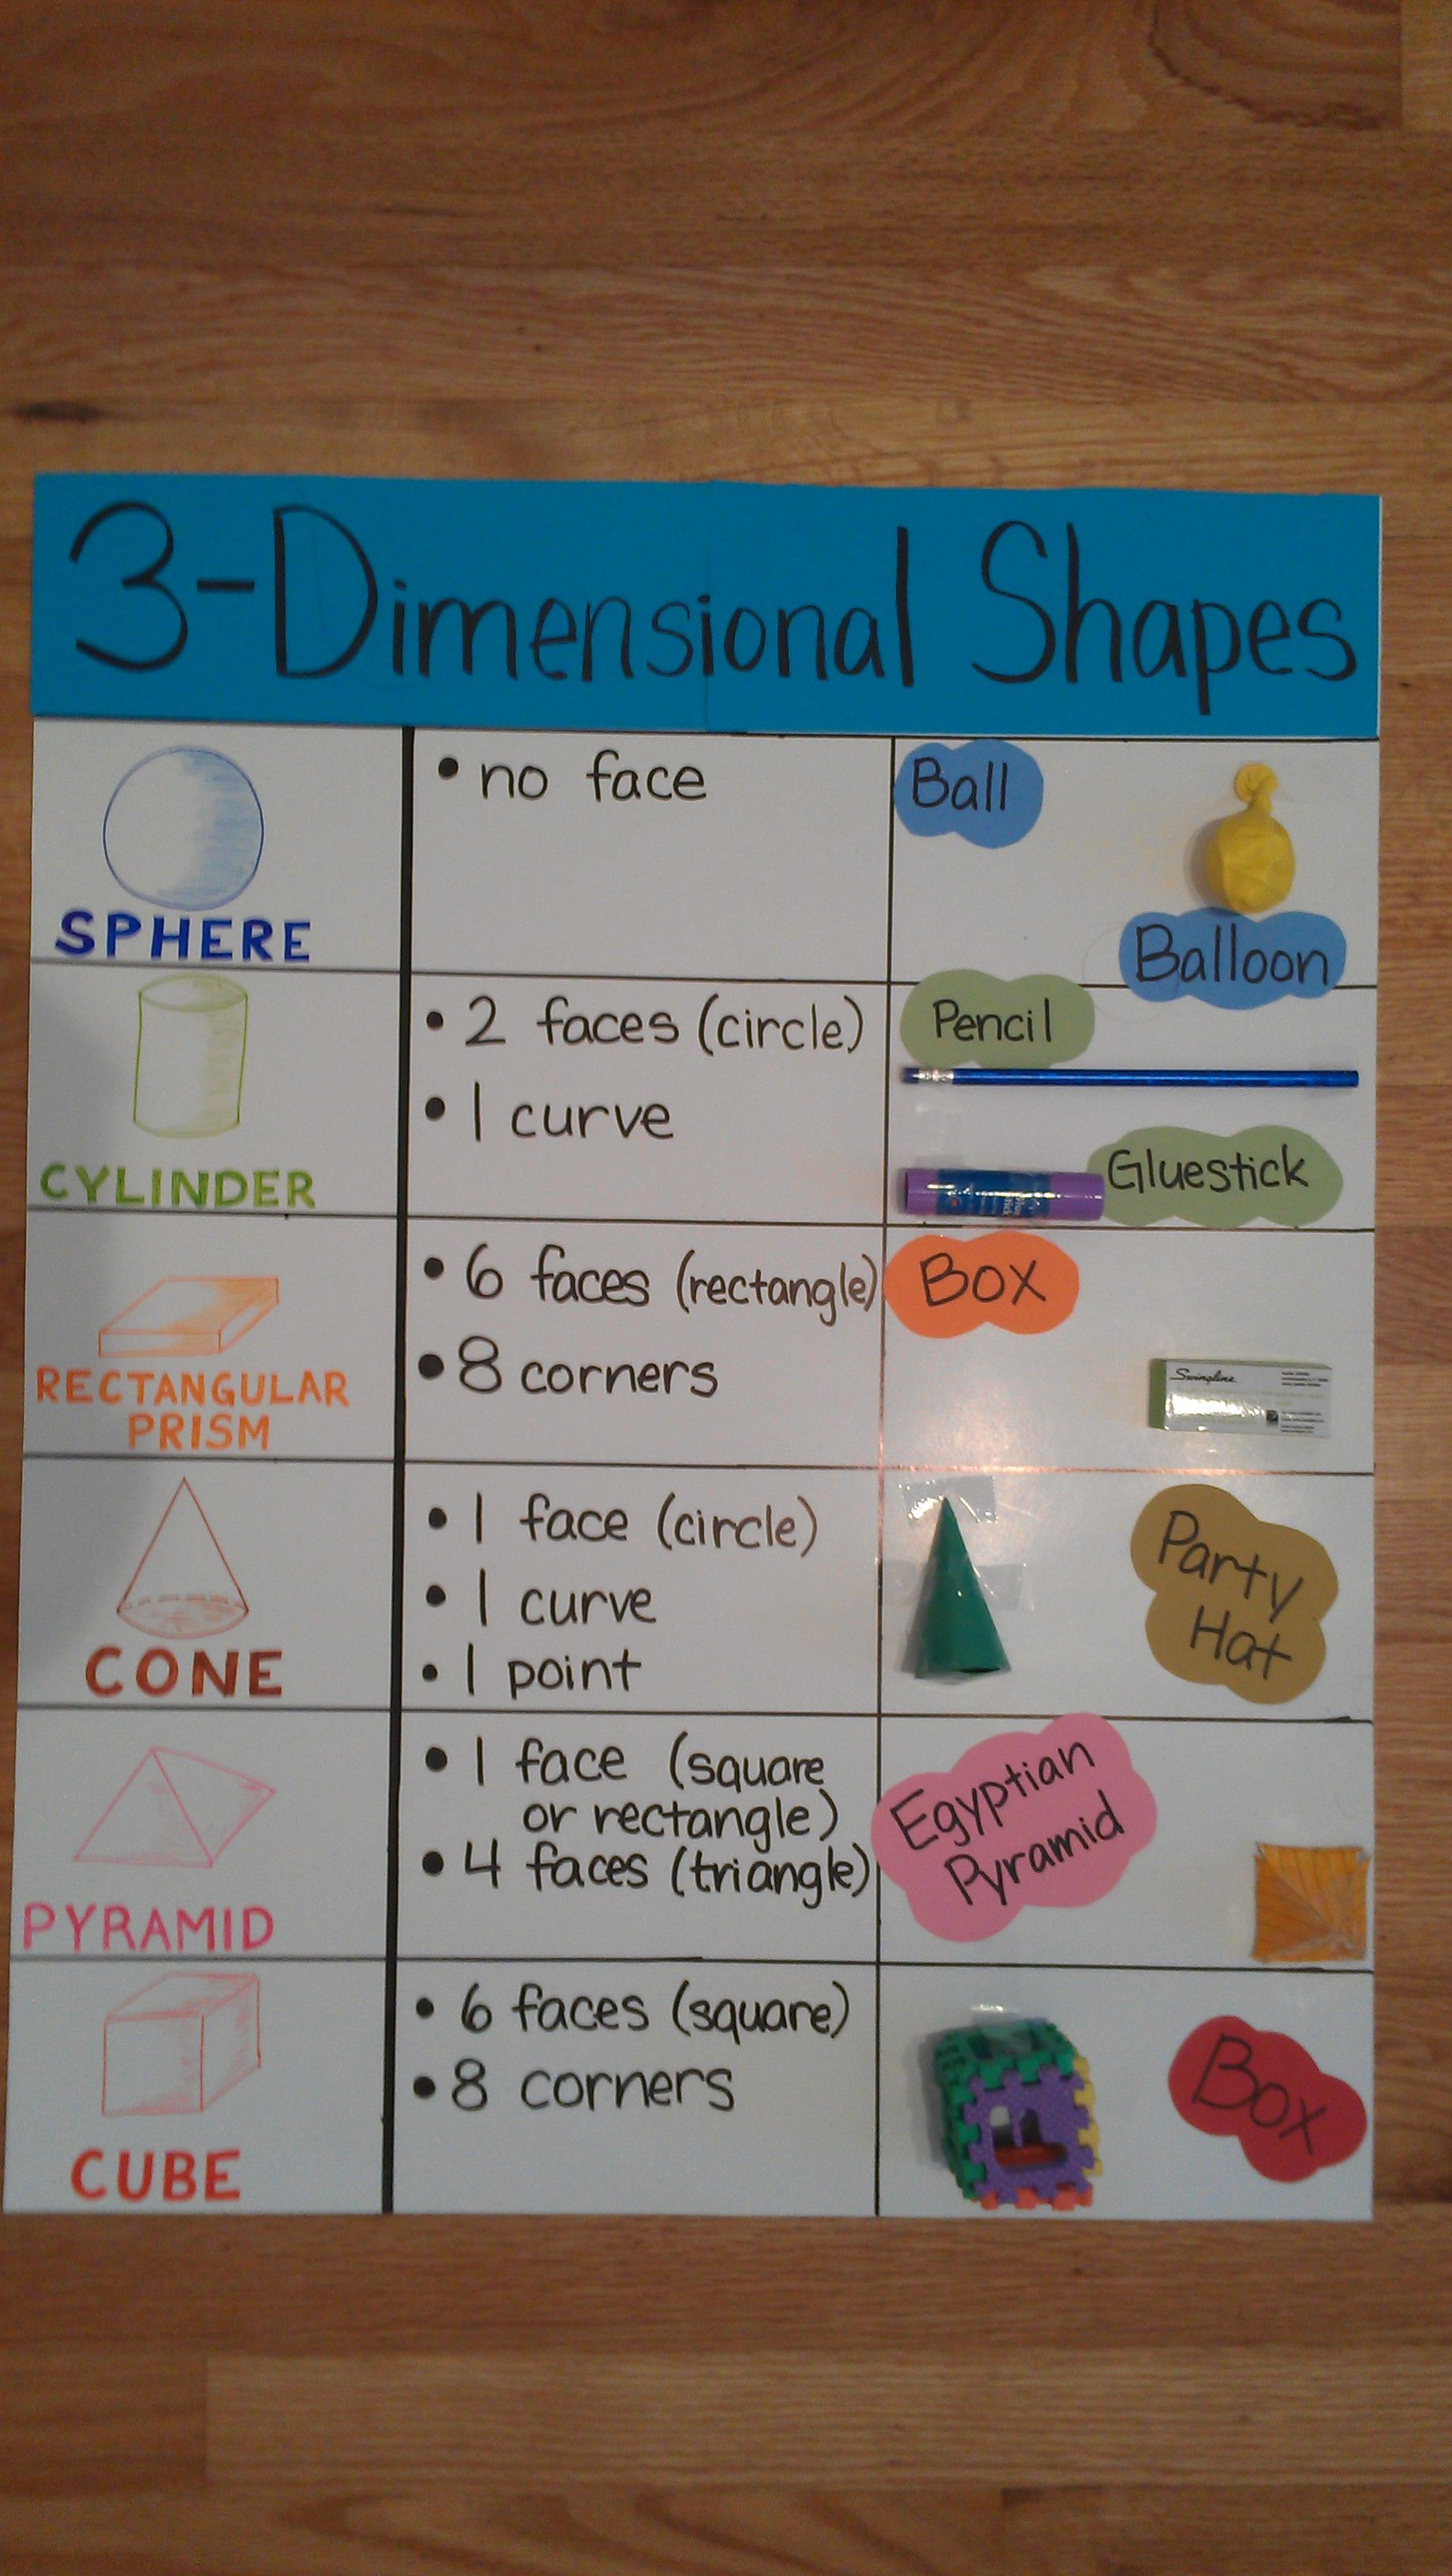 3 Dimensional Shape Poster That Younger Children Can